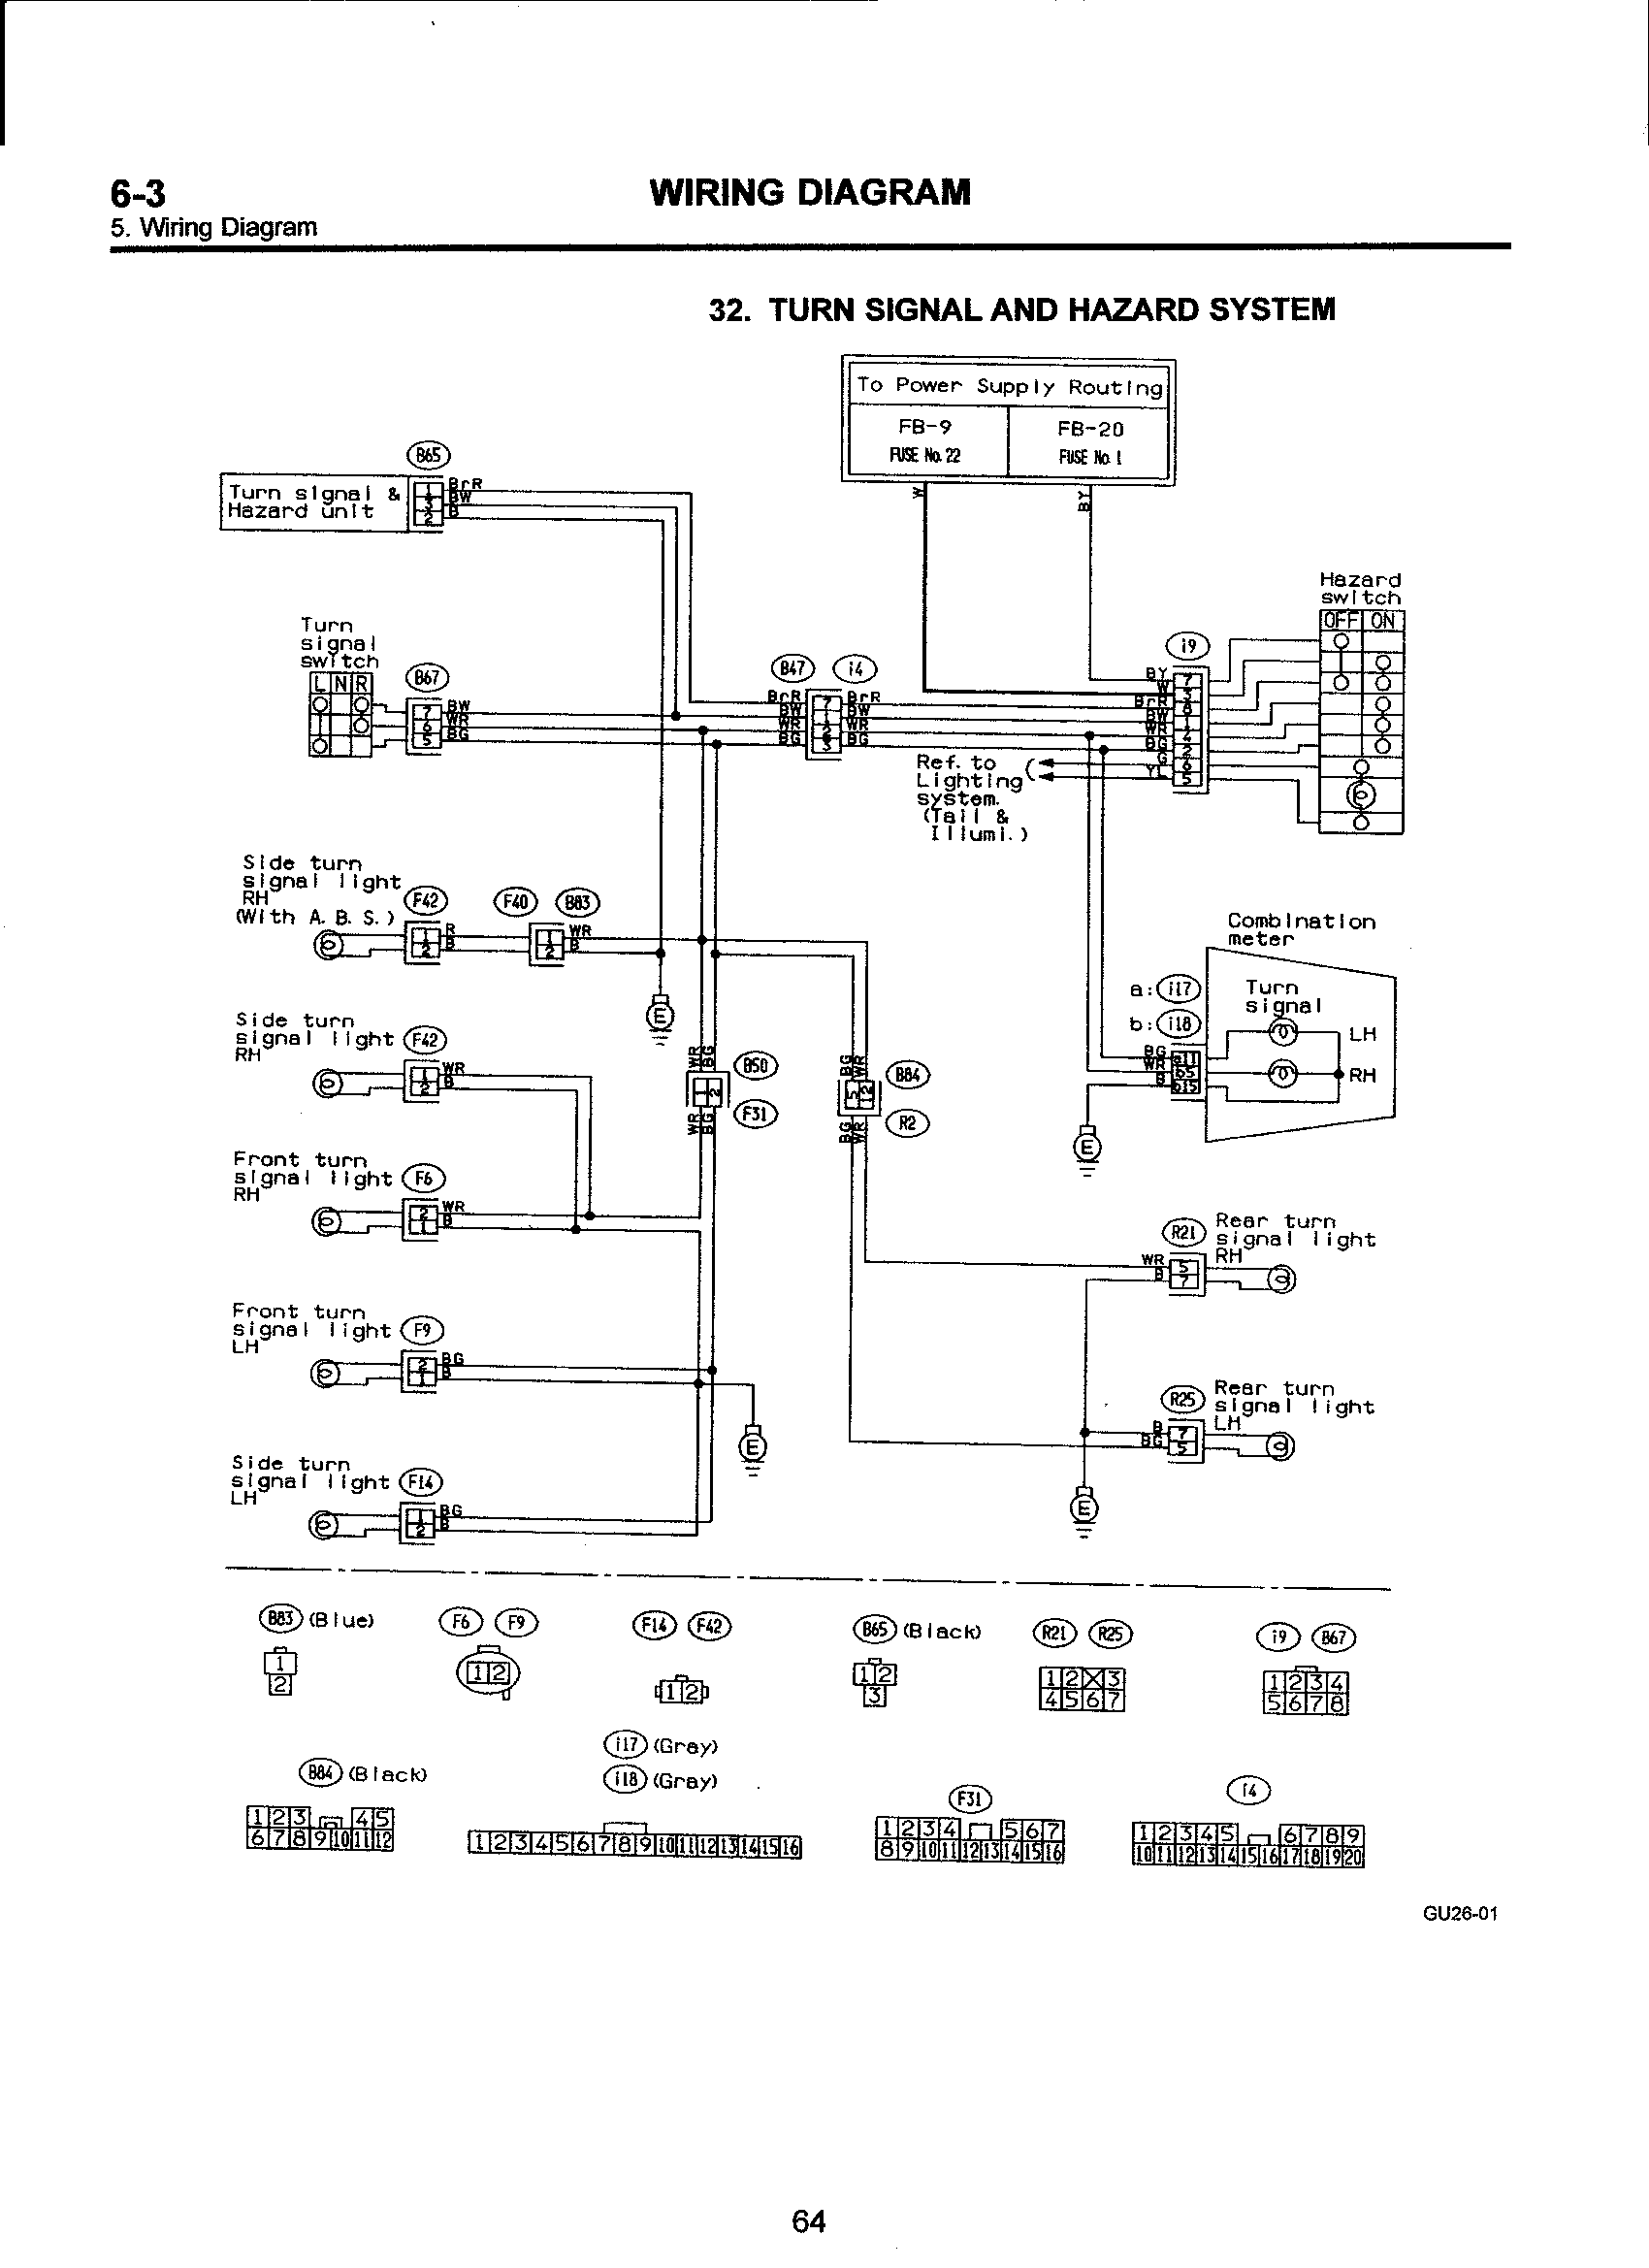 I Need An Electrical Diagram For A 1993 Subaru Impreza